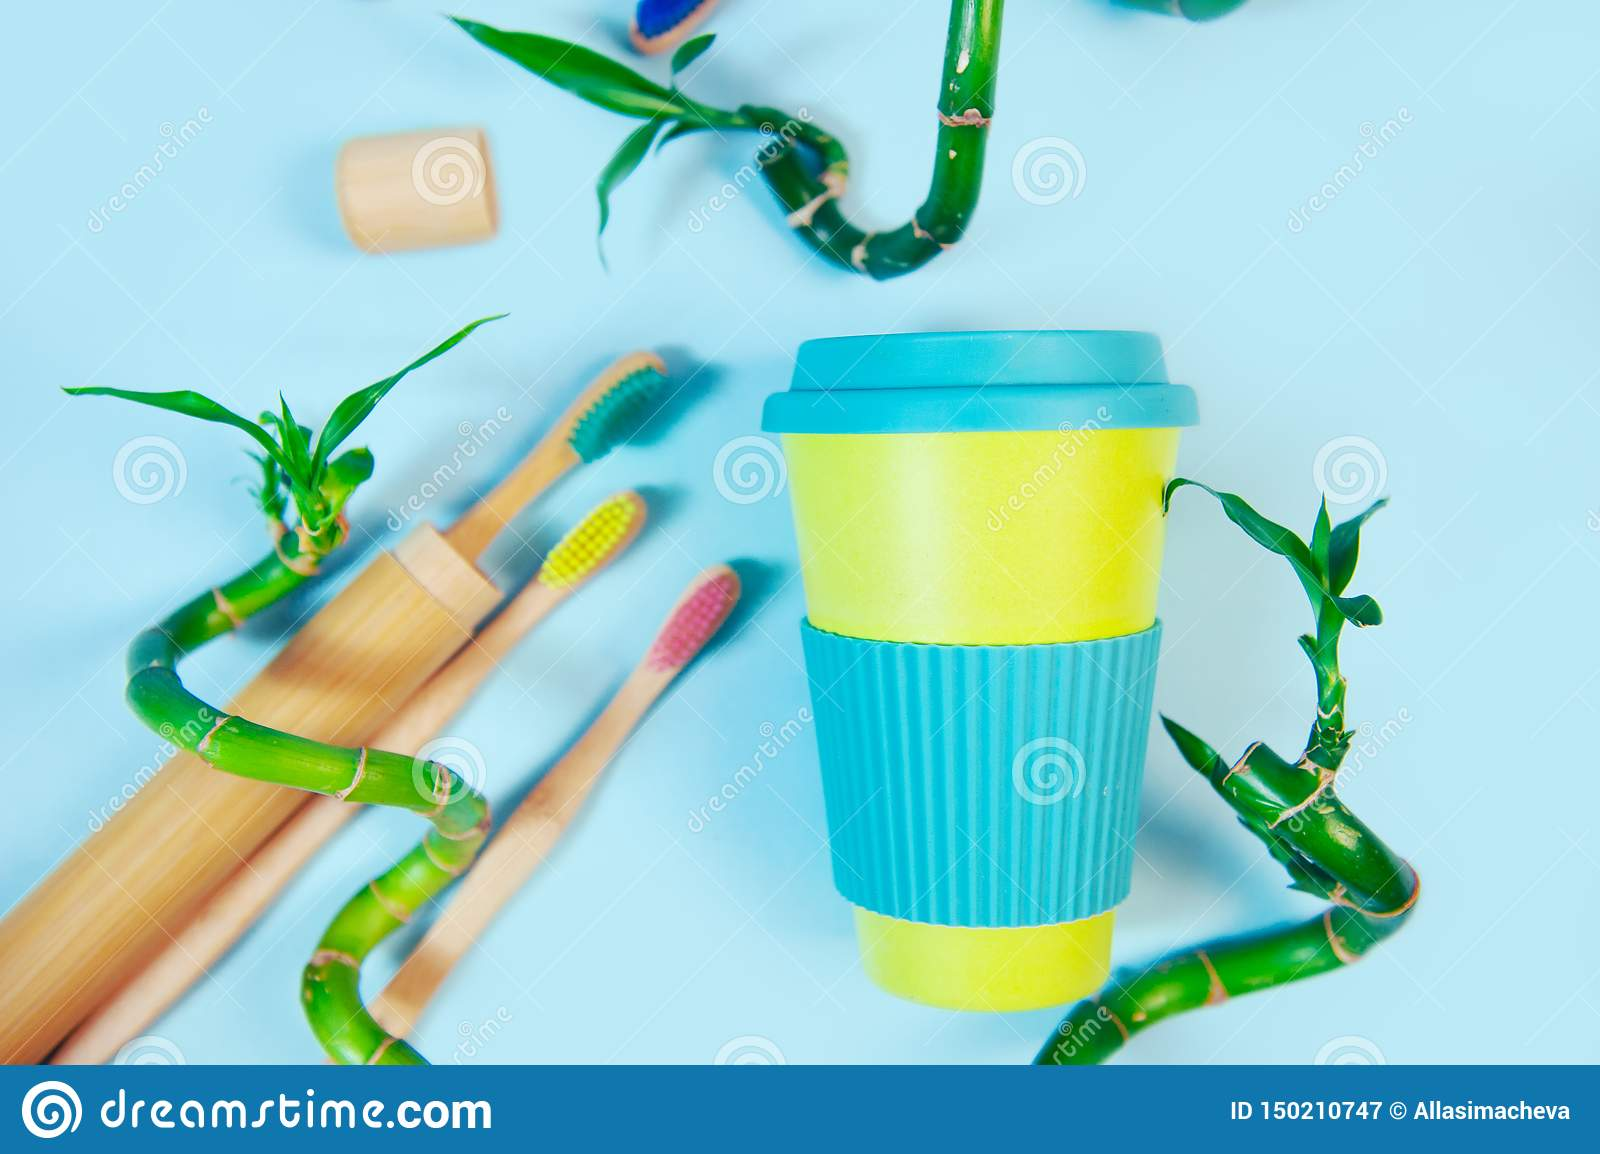 Sustainable and zero waste Eco Friendly Reusable Bamboo Cup with bamboo straw